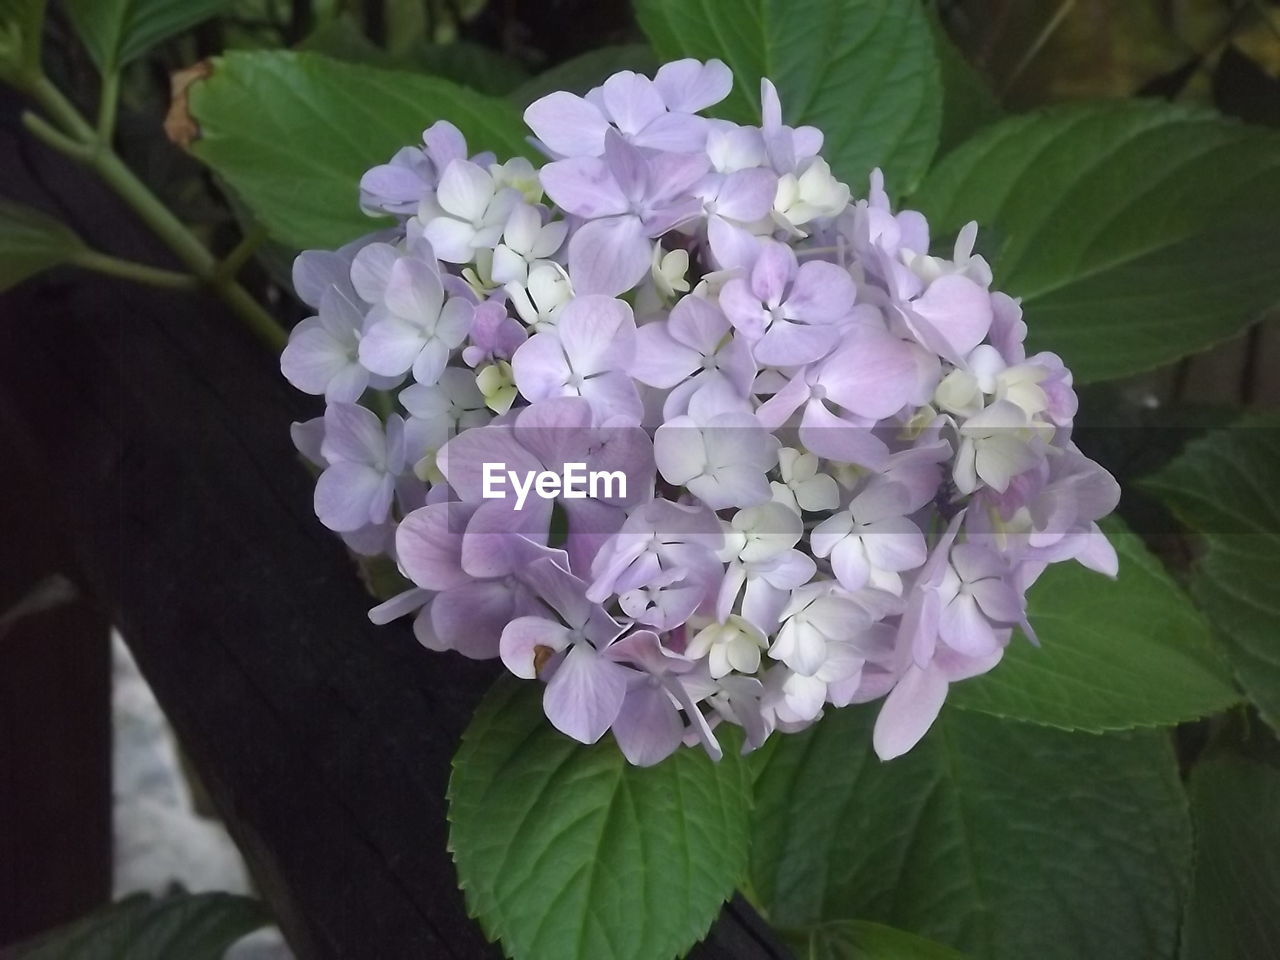 flower, nature, beauty in nature, growth, petal, purple, leaf, freshness, plant, hydrangea, fragility, day, blooming, close-up, no people, outdoors, flower head, lilac